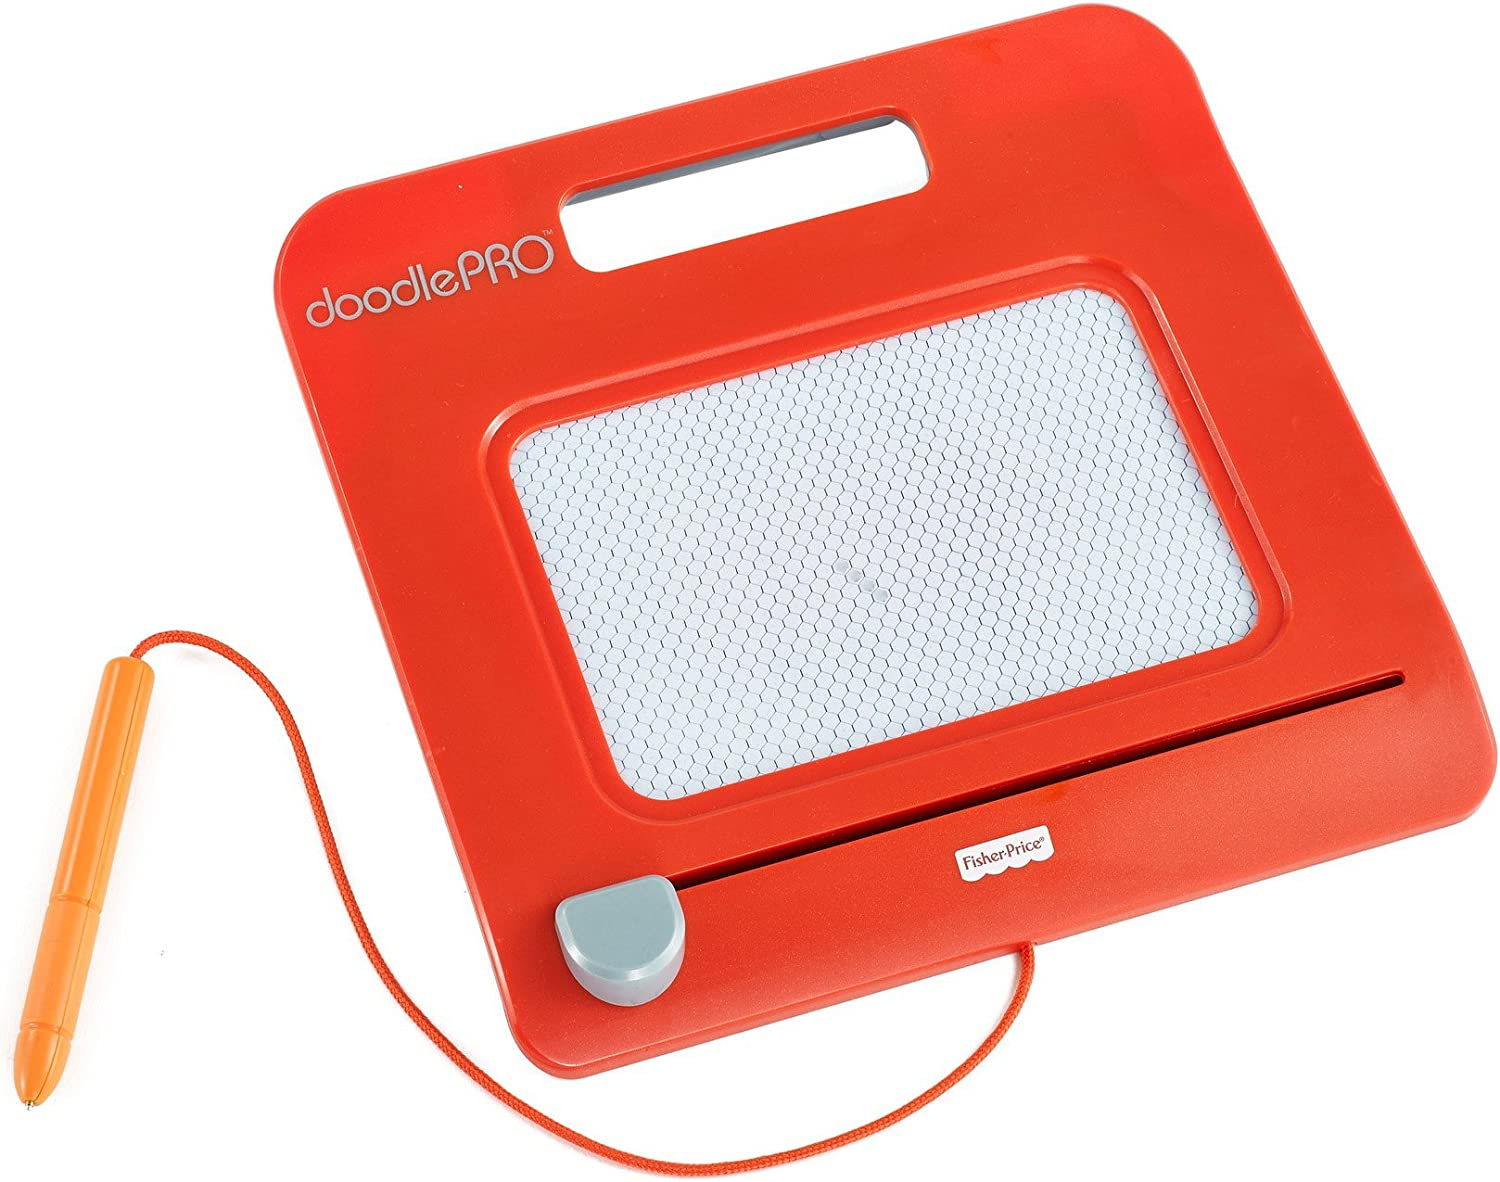 Fisher-Price DoodlePro, Trip